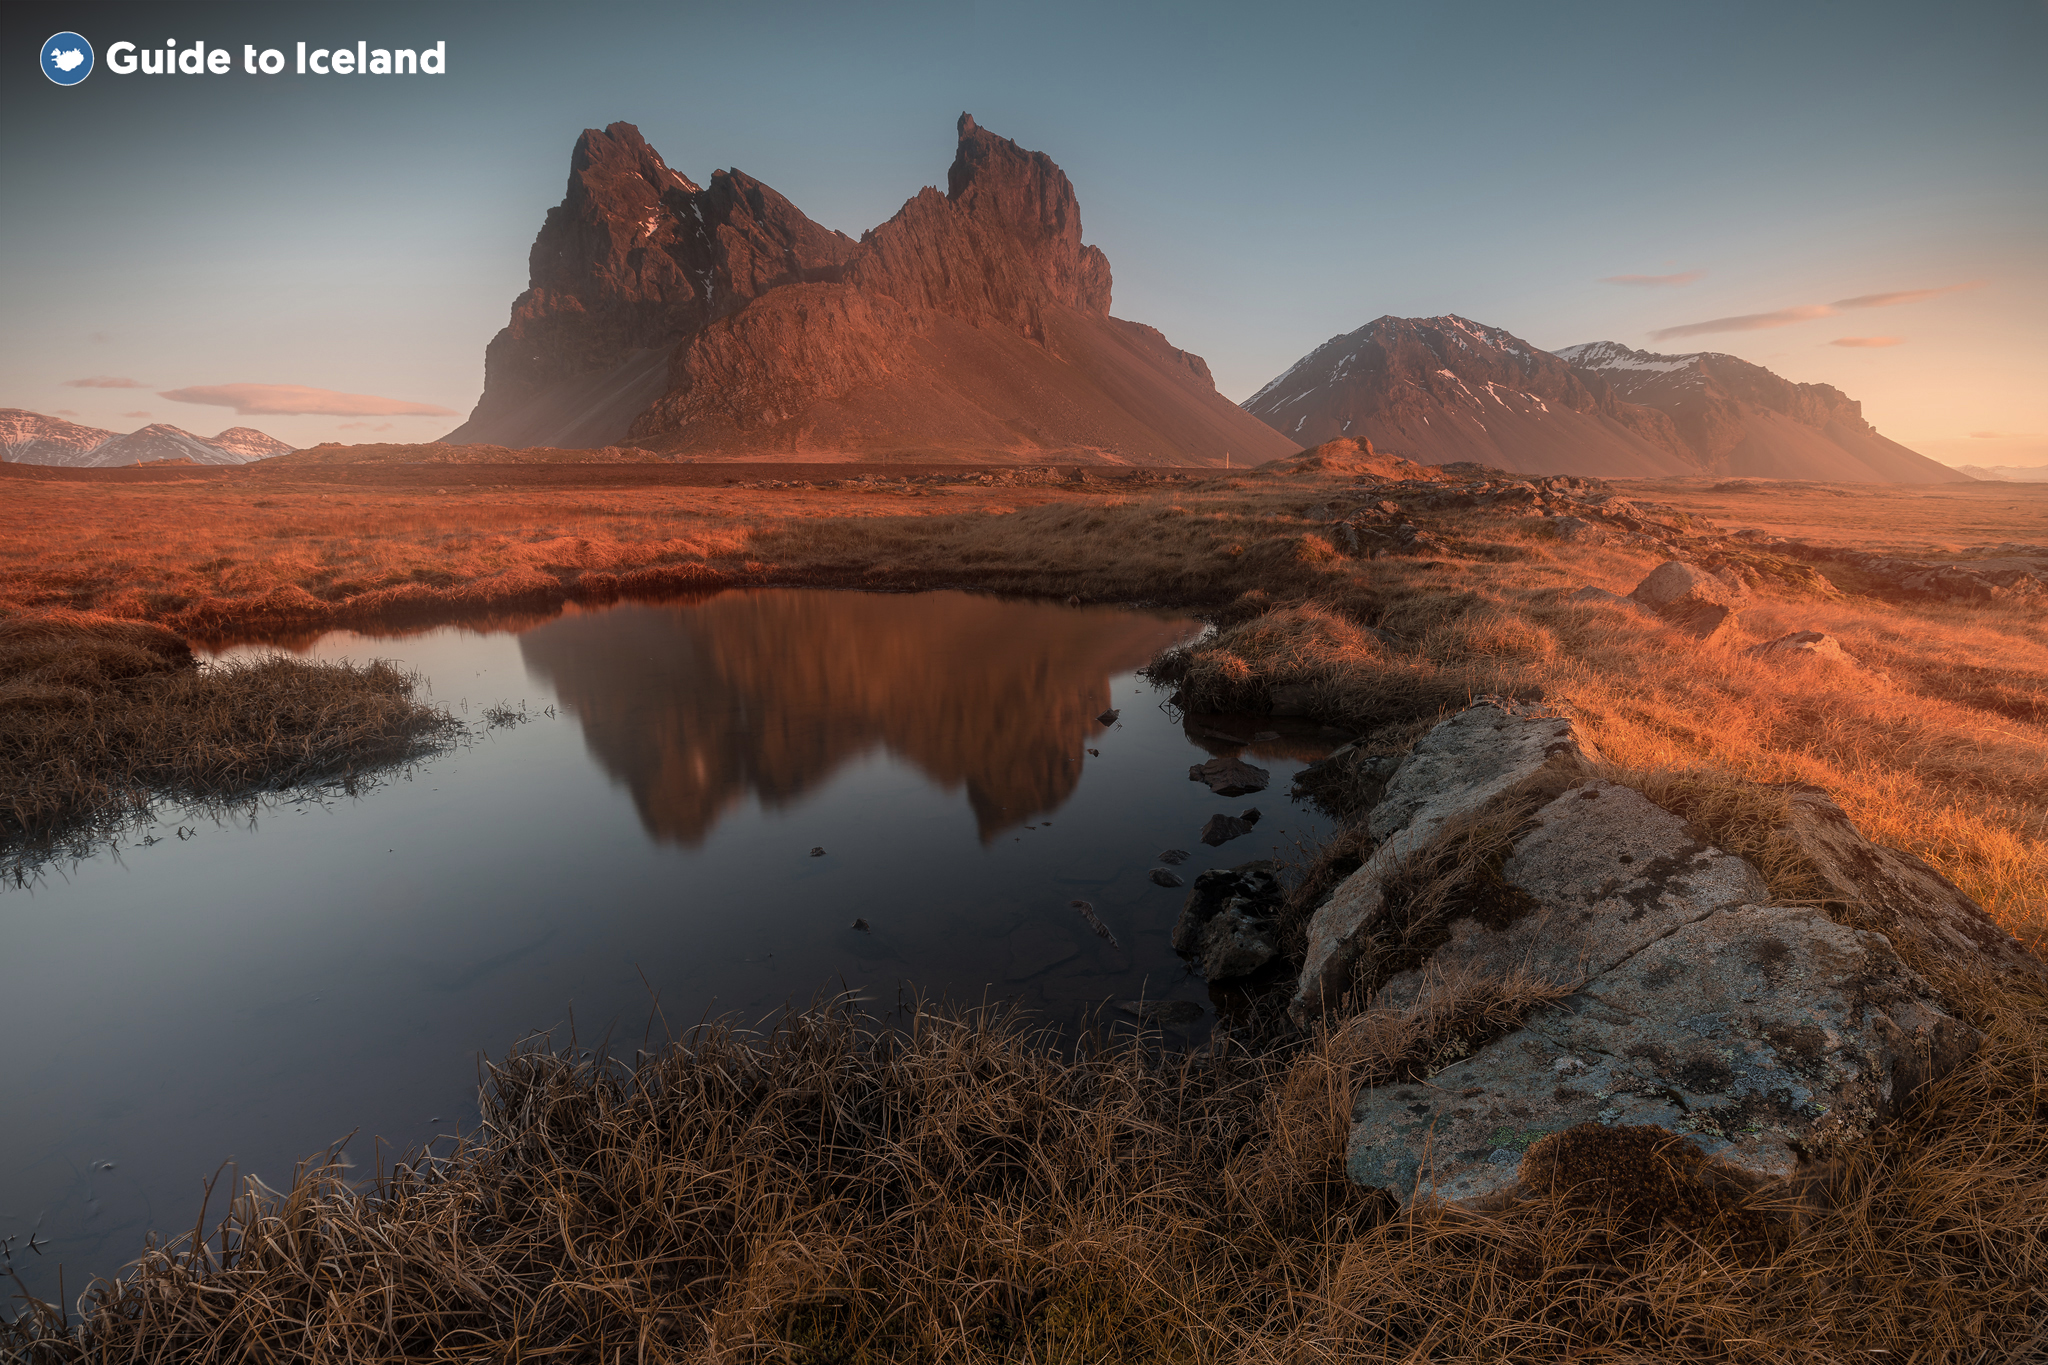 An image of a mountain in Iceland's remote East Fjords in summer.